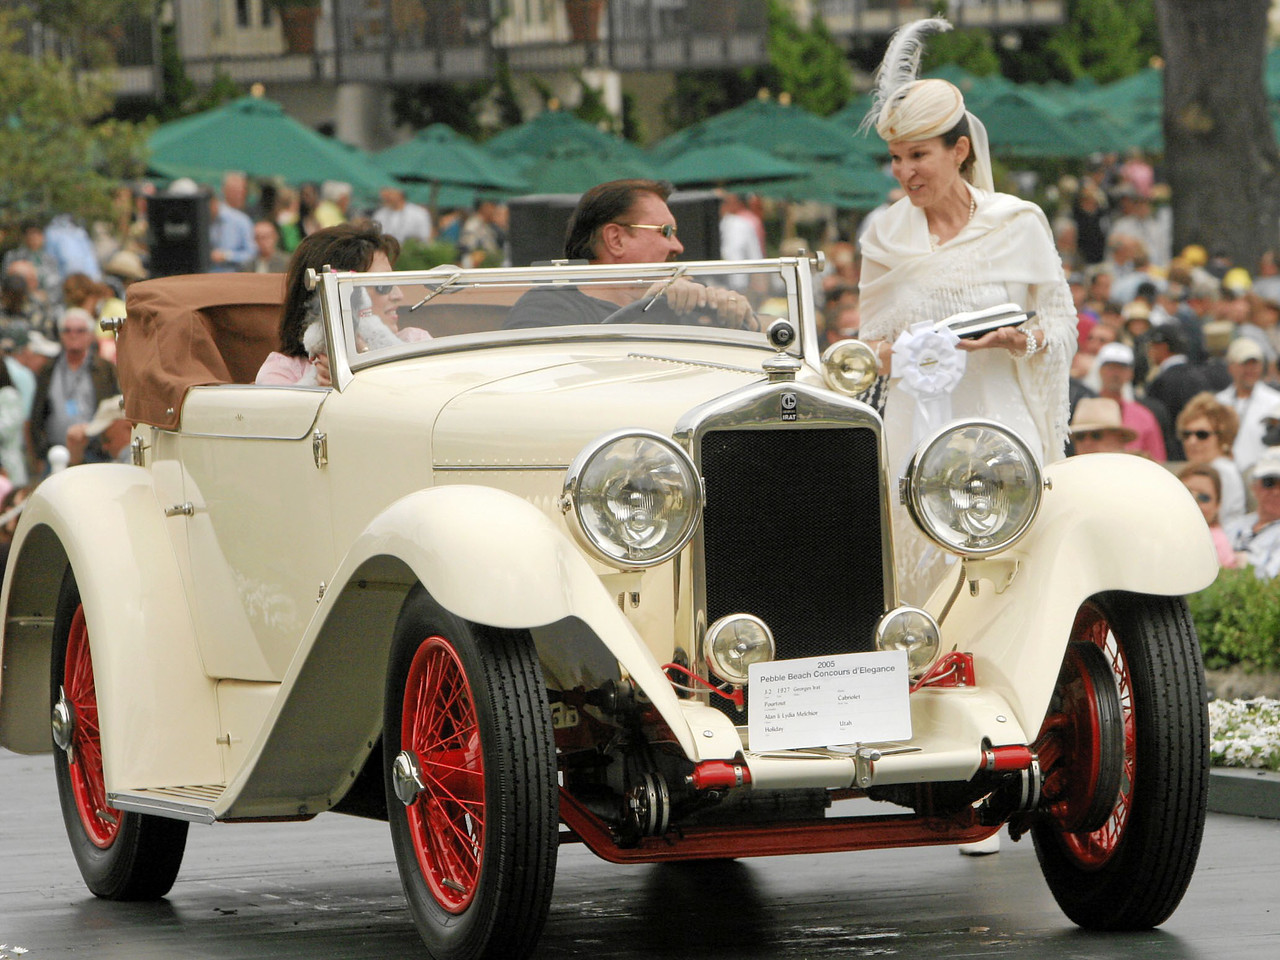 1927 Georges Irat Pourtout Cabriolet owned by Alan and Lydia Melchior from Holiday, Utah 3rd Class J-2 (European Classic 1925-1939 Open)